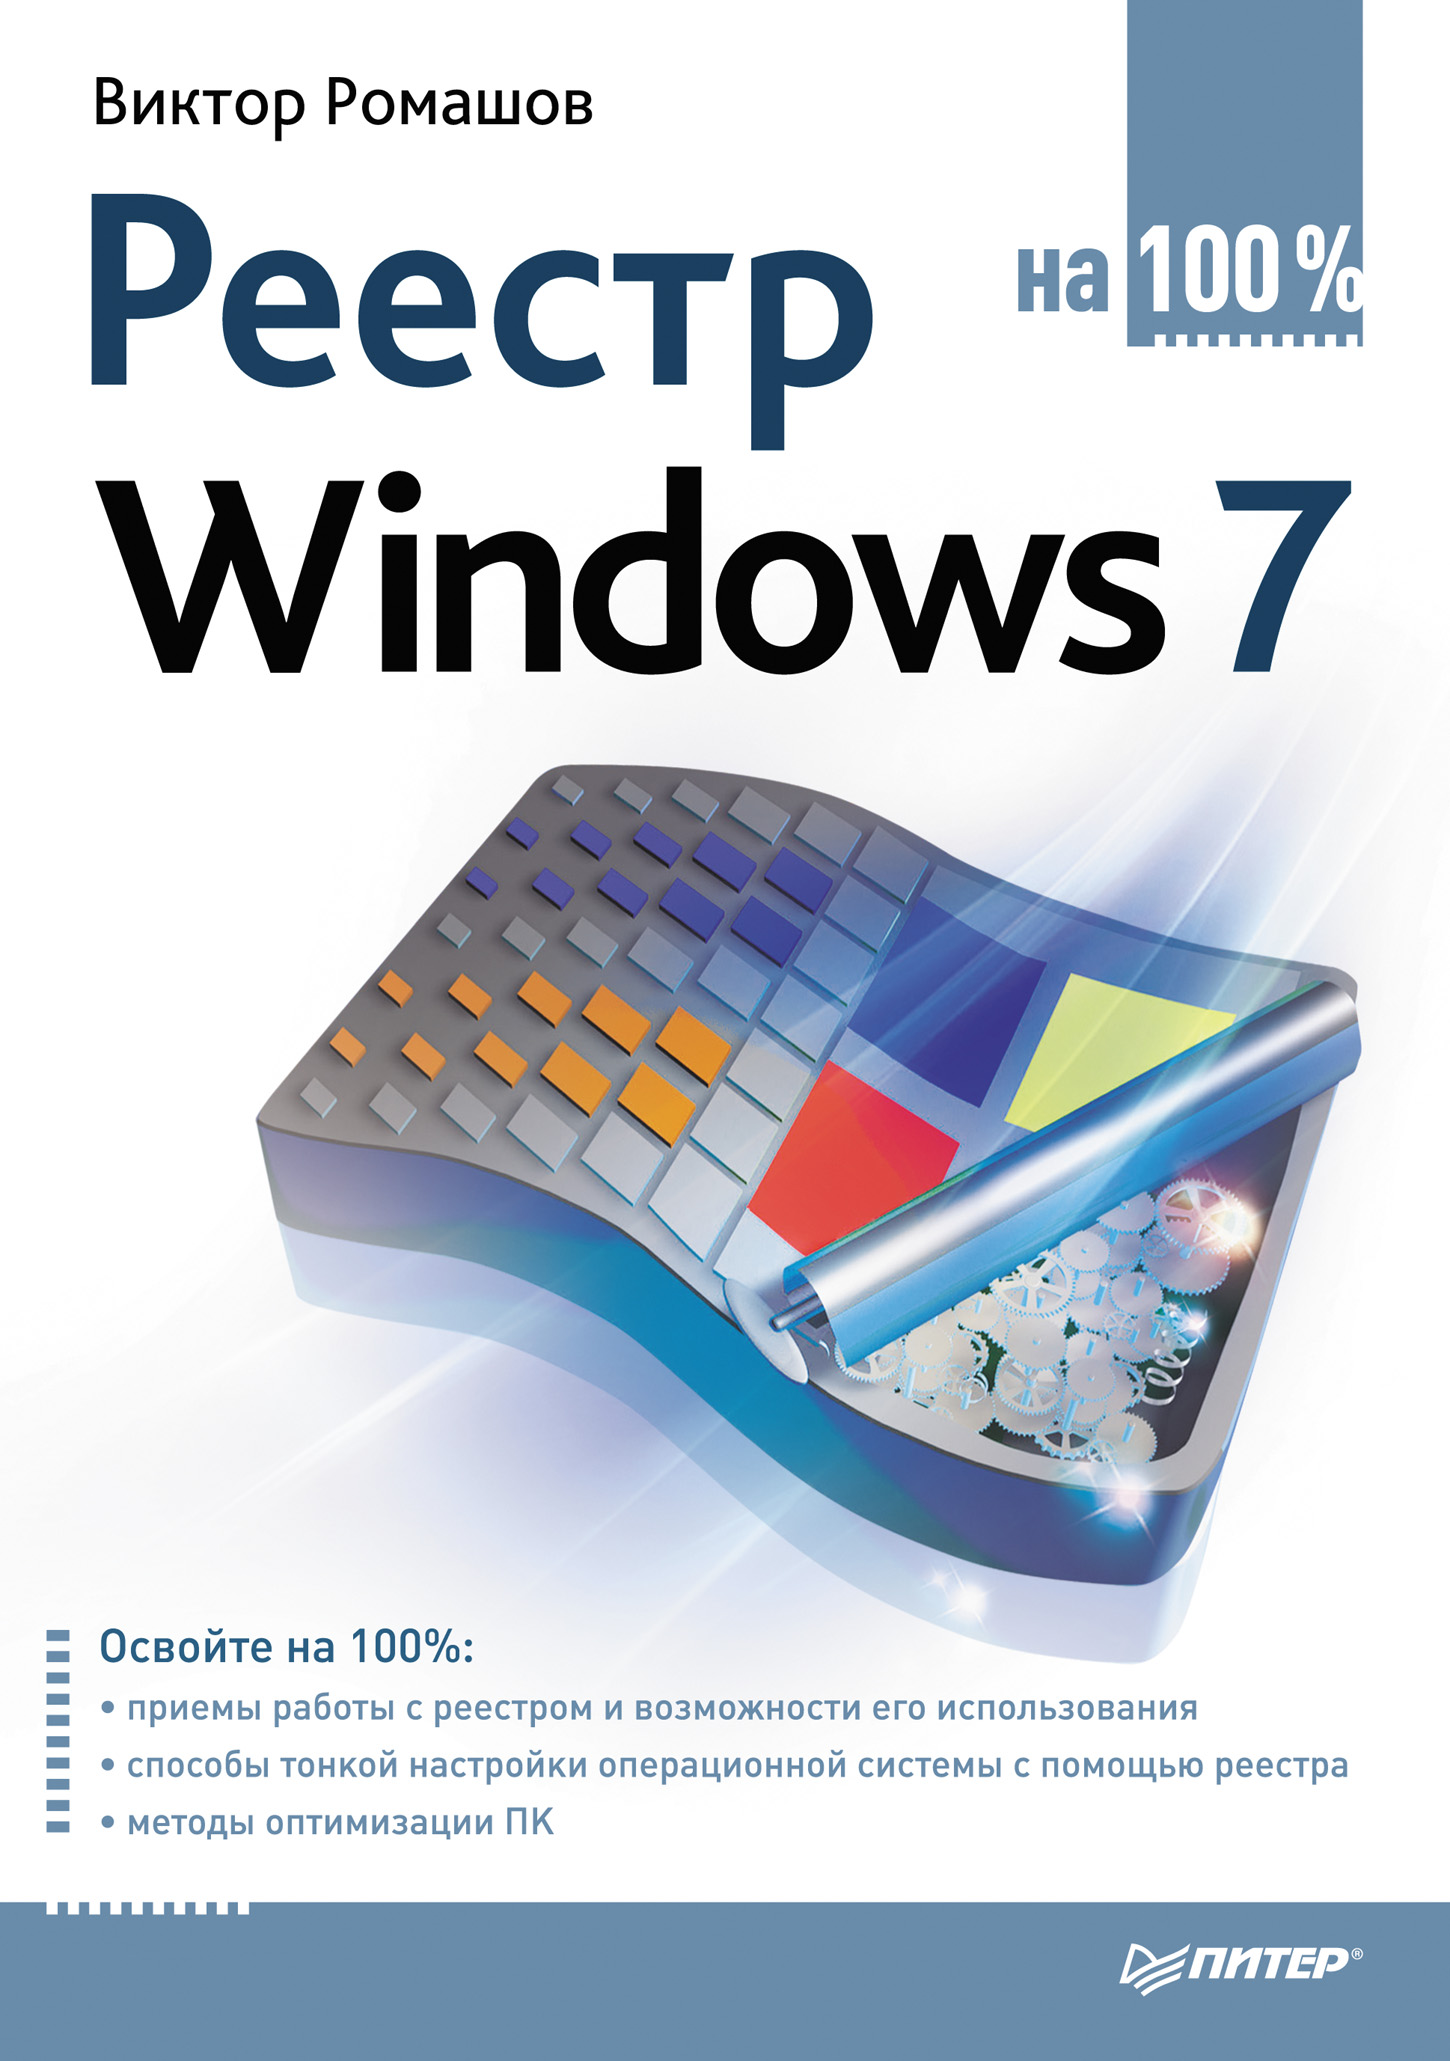 Виктор Ромашов Реестр Windows 7 на 100% ноутбук и windows 7